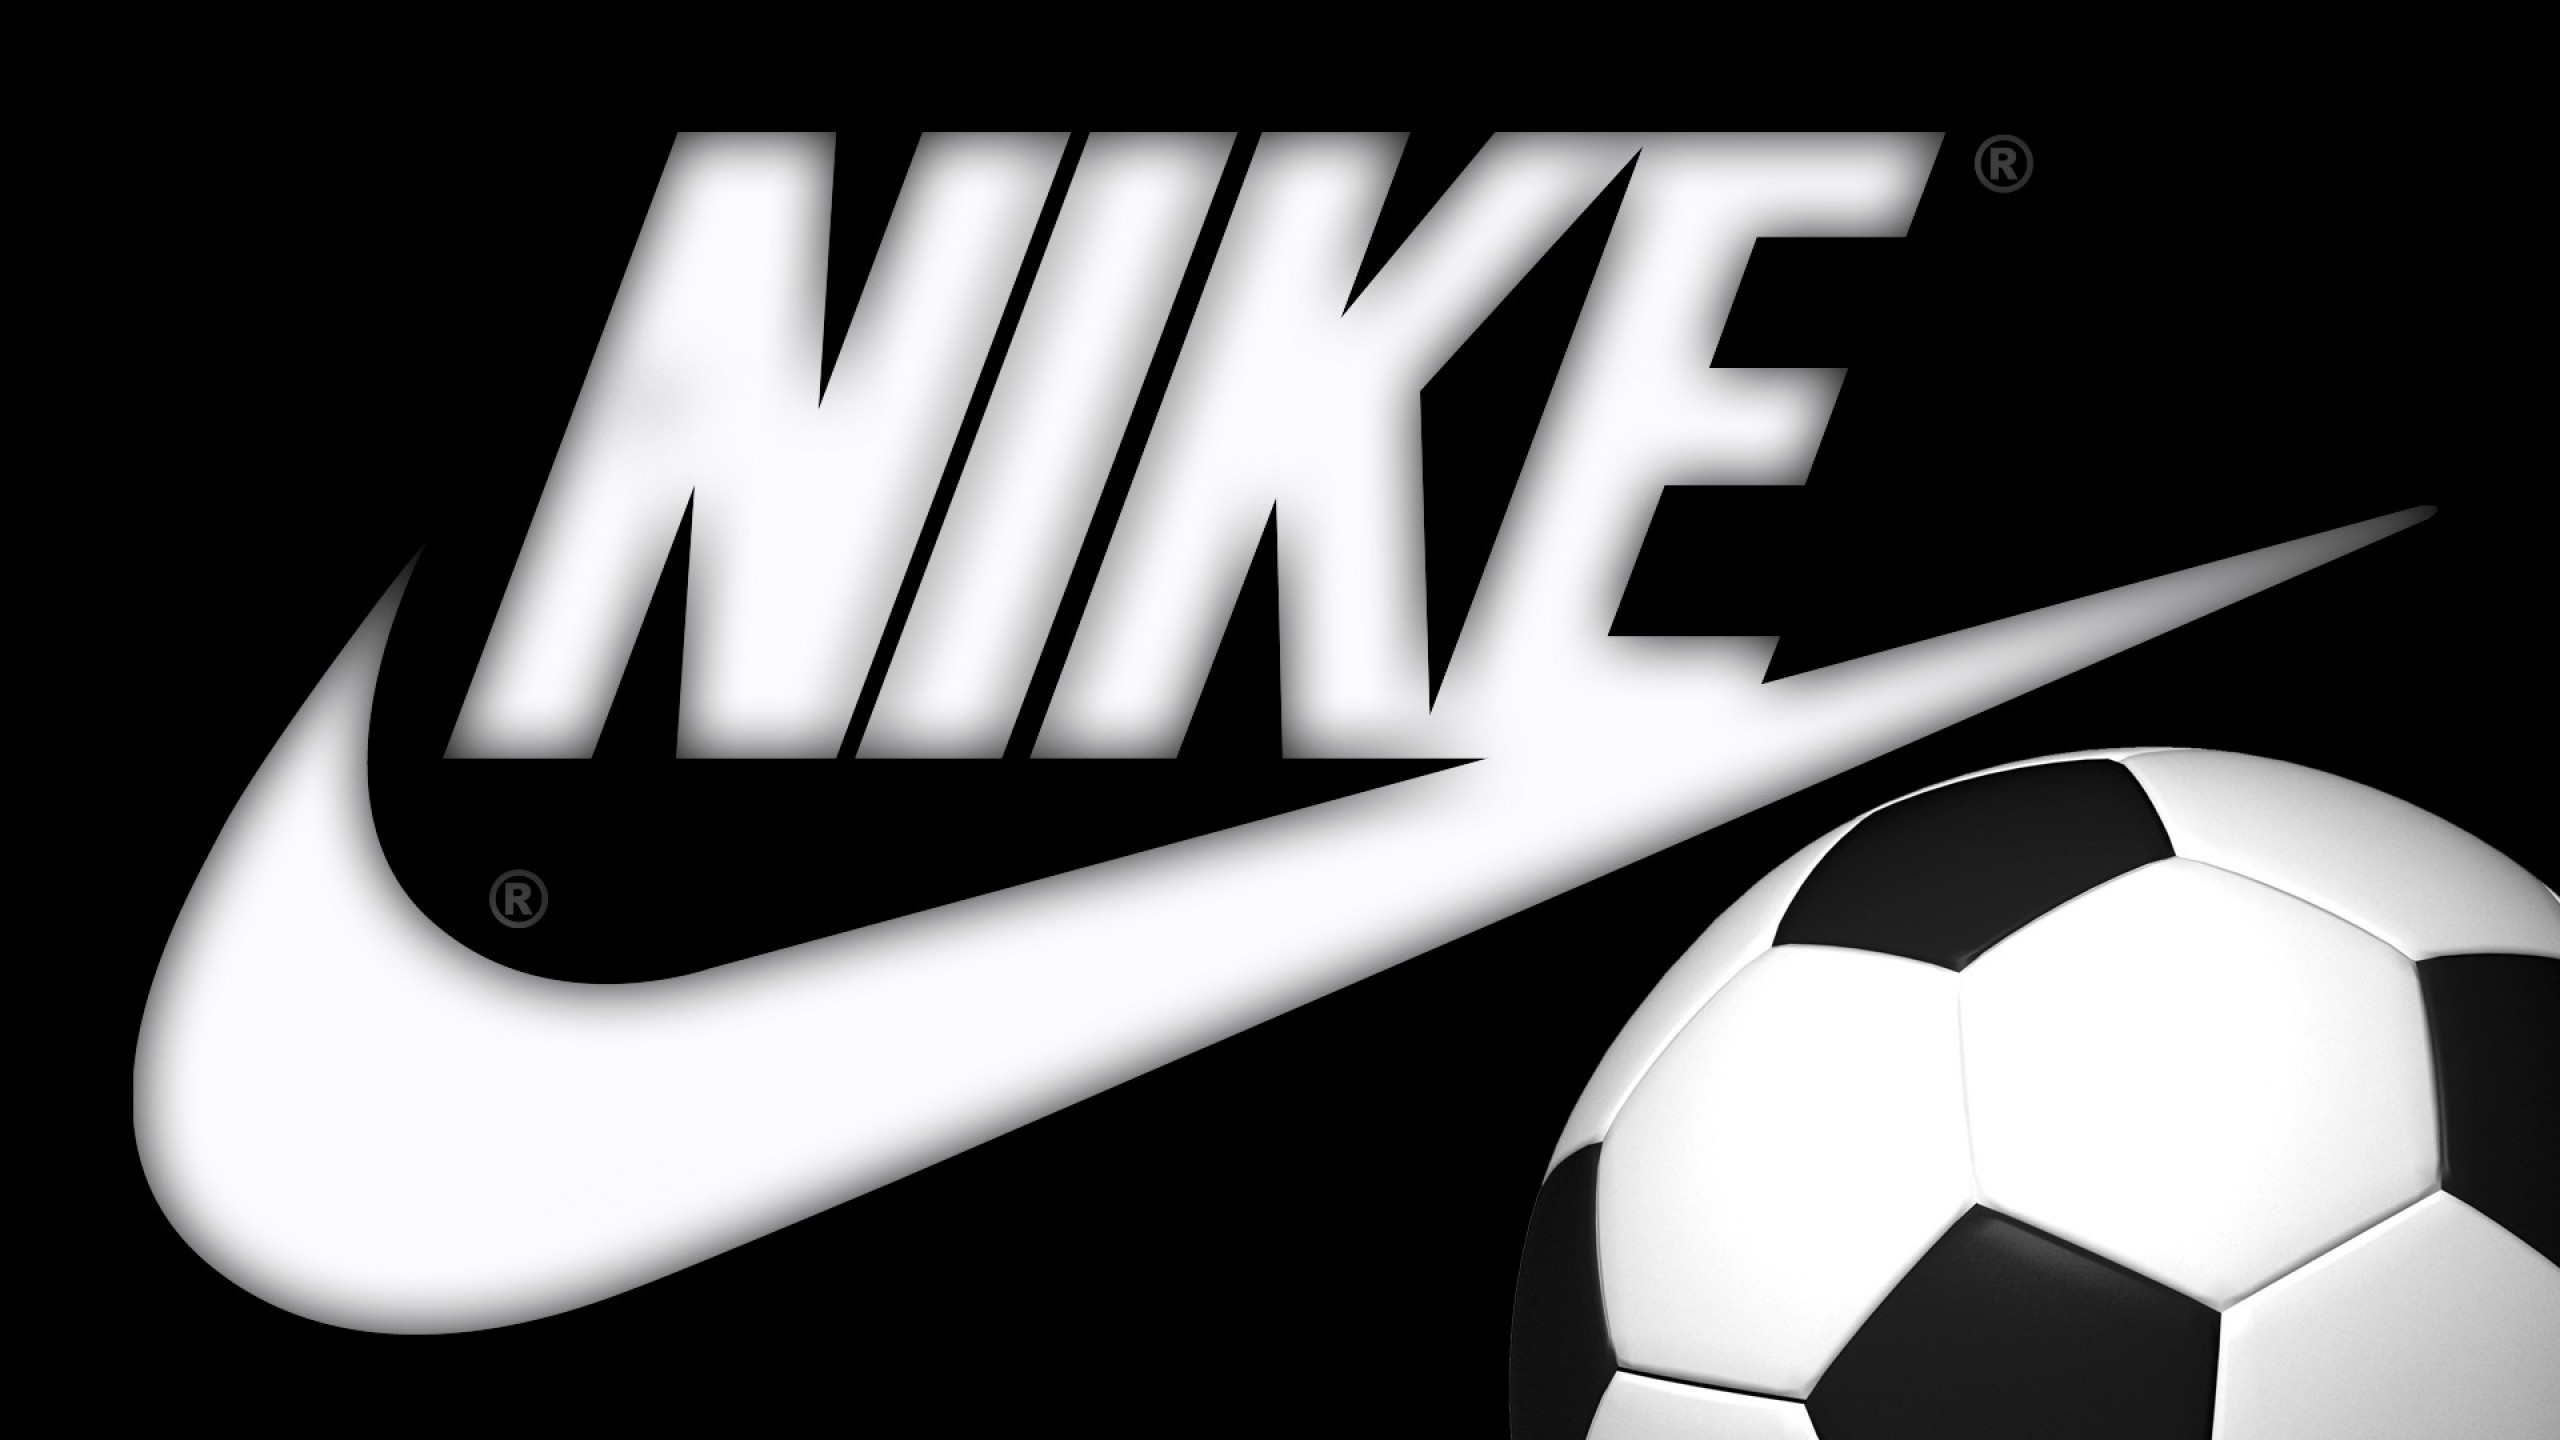 Nike wallpaper soccer 1920x1080 nike spring 2015 highlight pack soccer cleat colorways wallpaper voltagebd Images